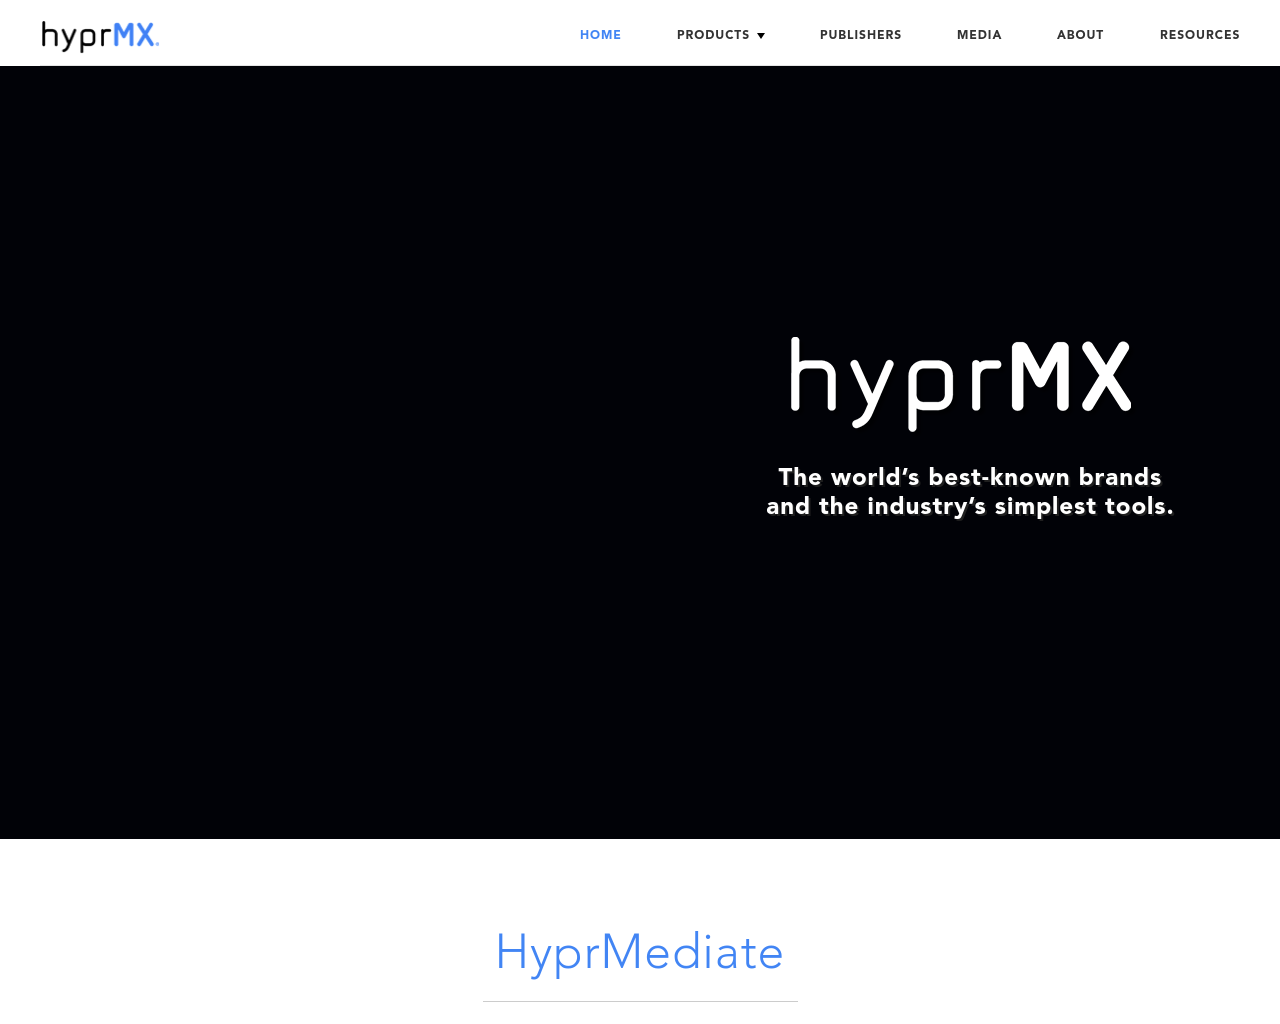 HyprMX-Advertising-Reviews-Pricing